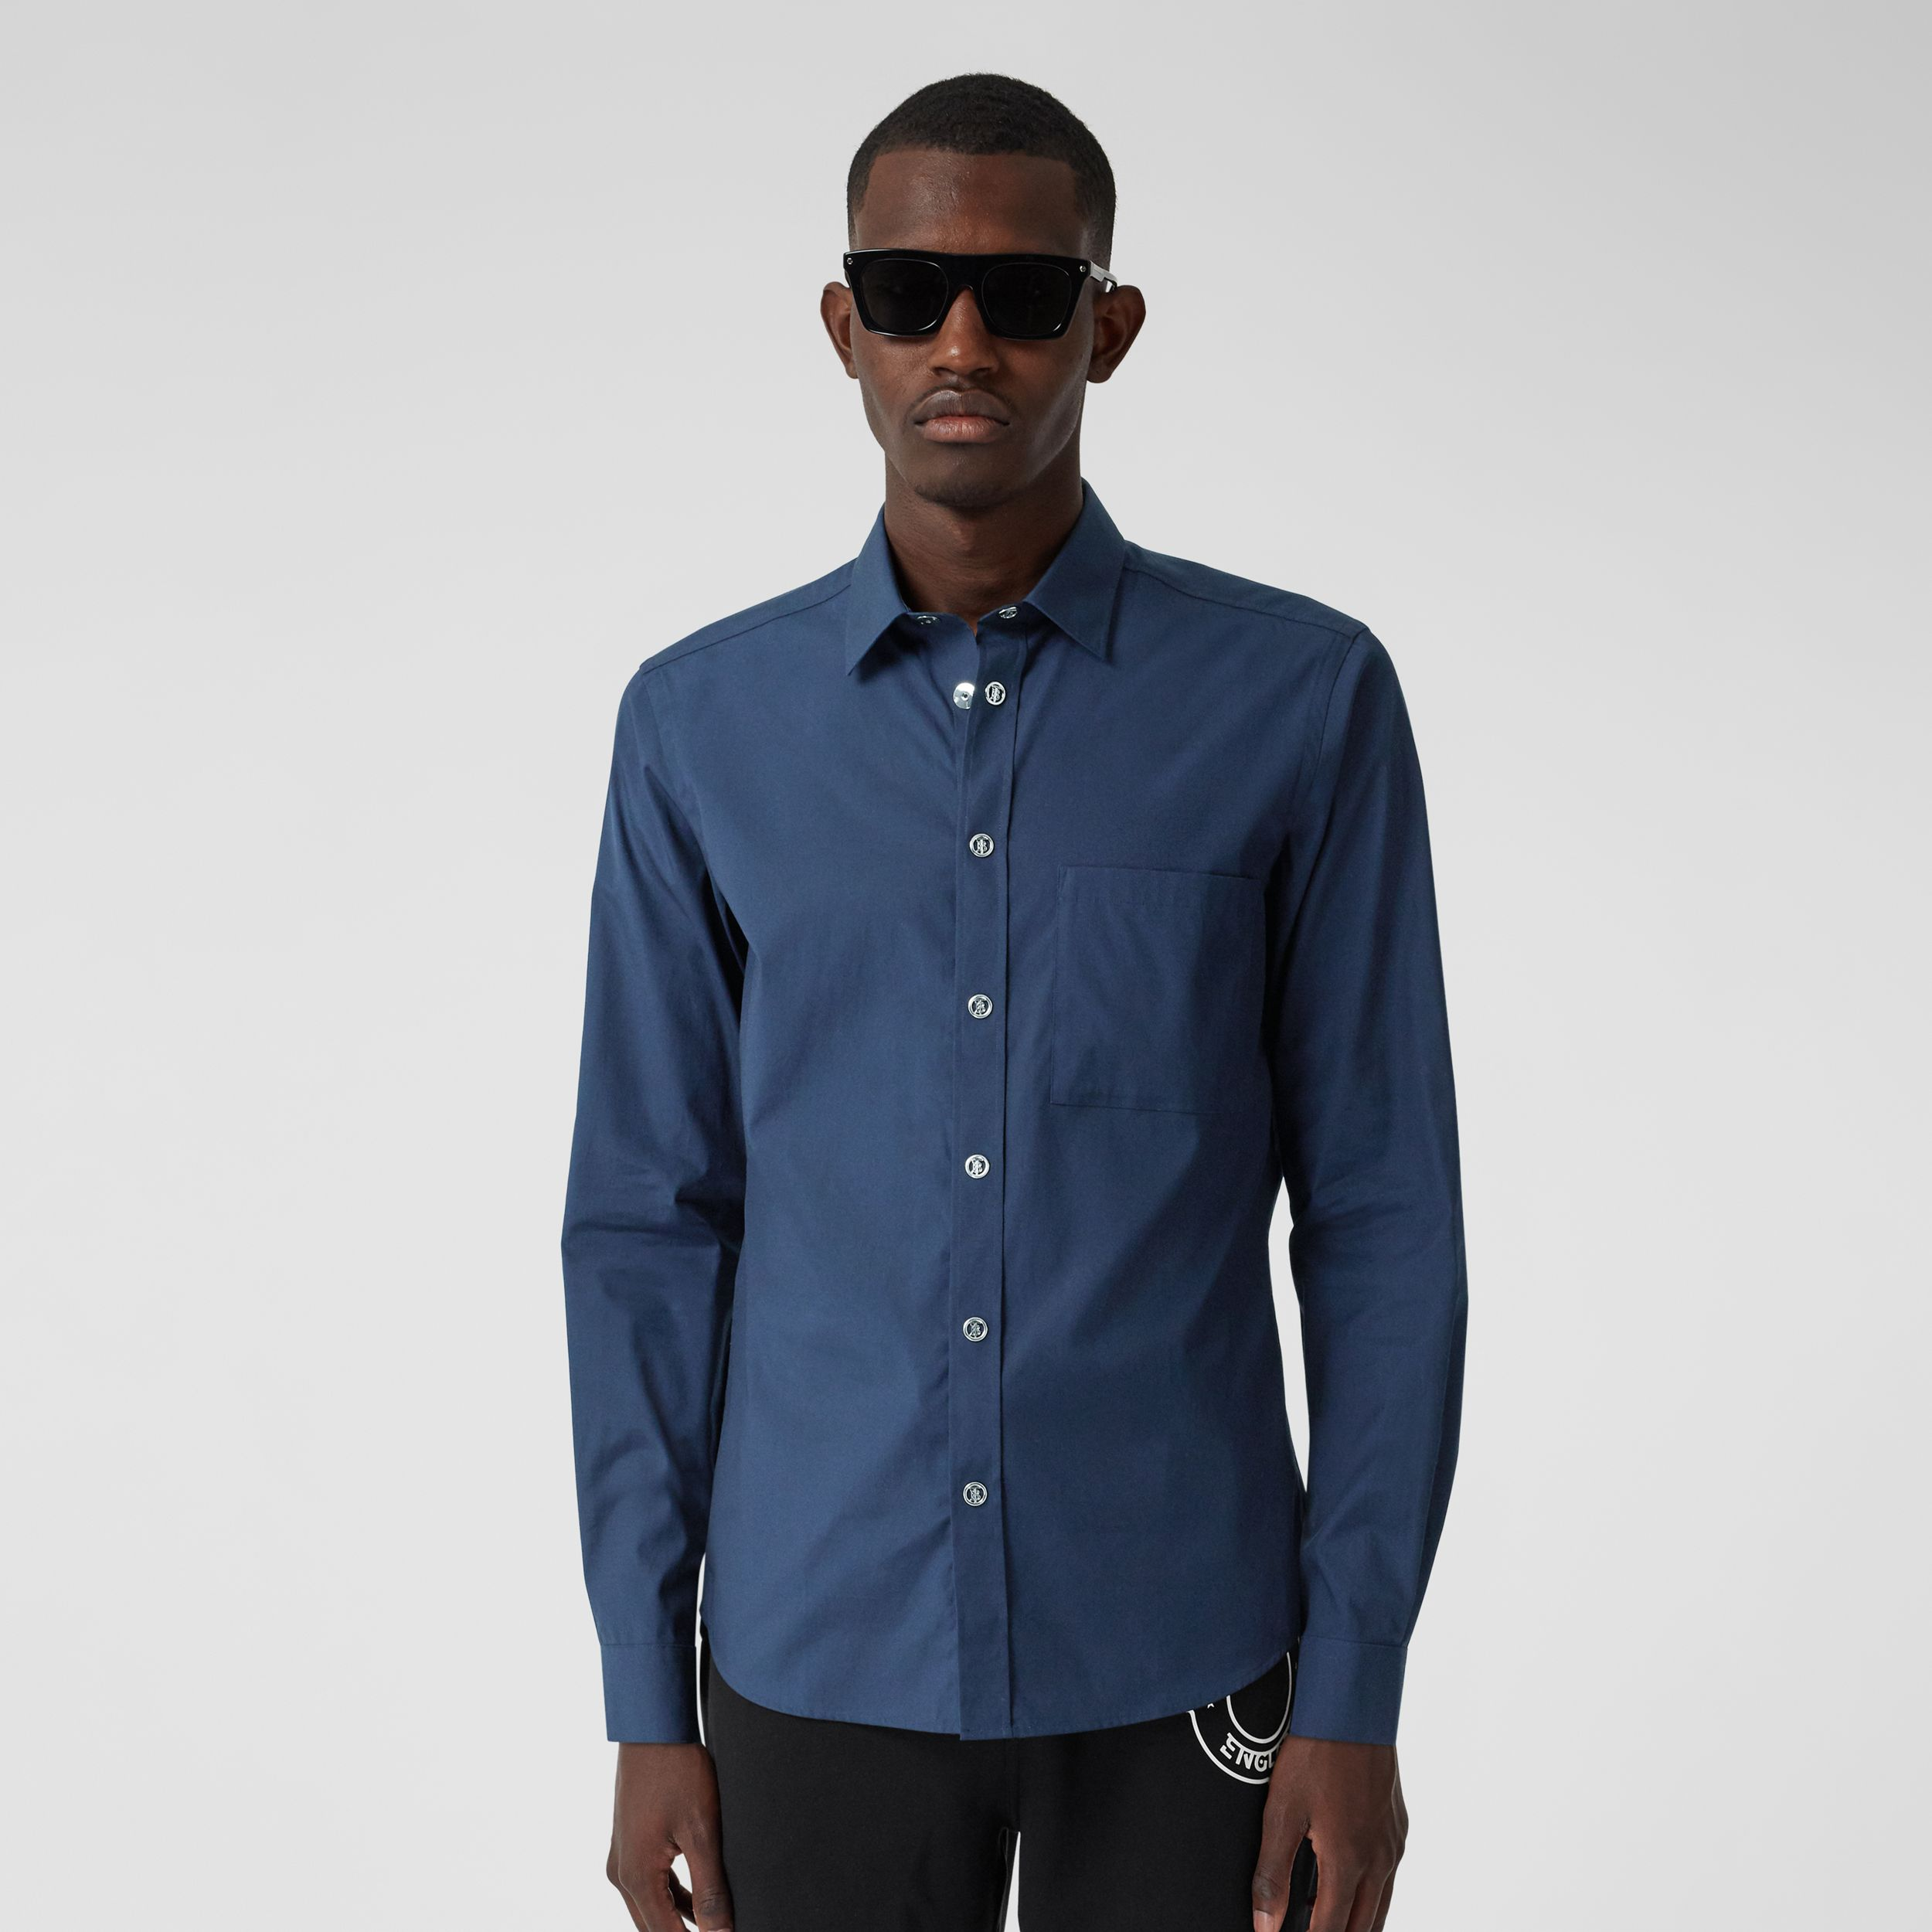 Monogram Motif Stretch Cotton Shirt in Navy - Men | Burberry United Kingdom - 1